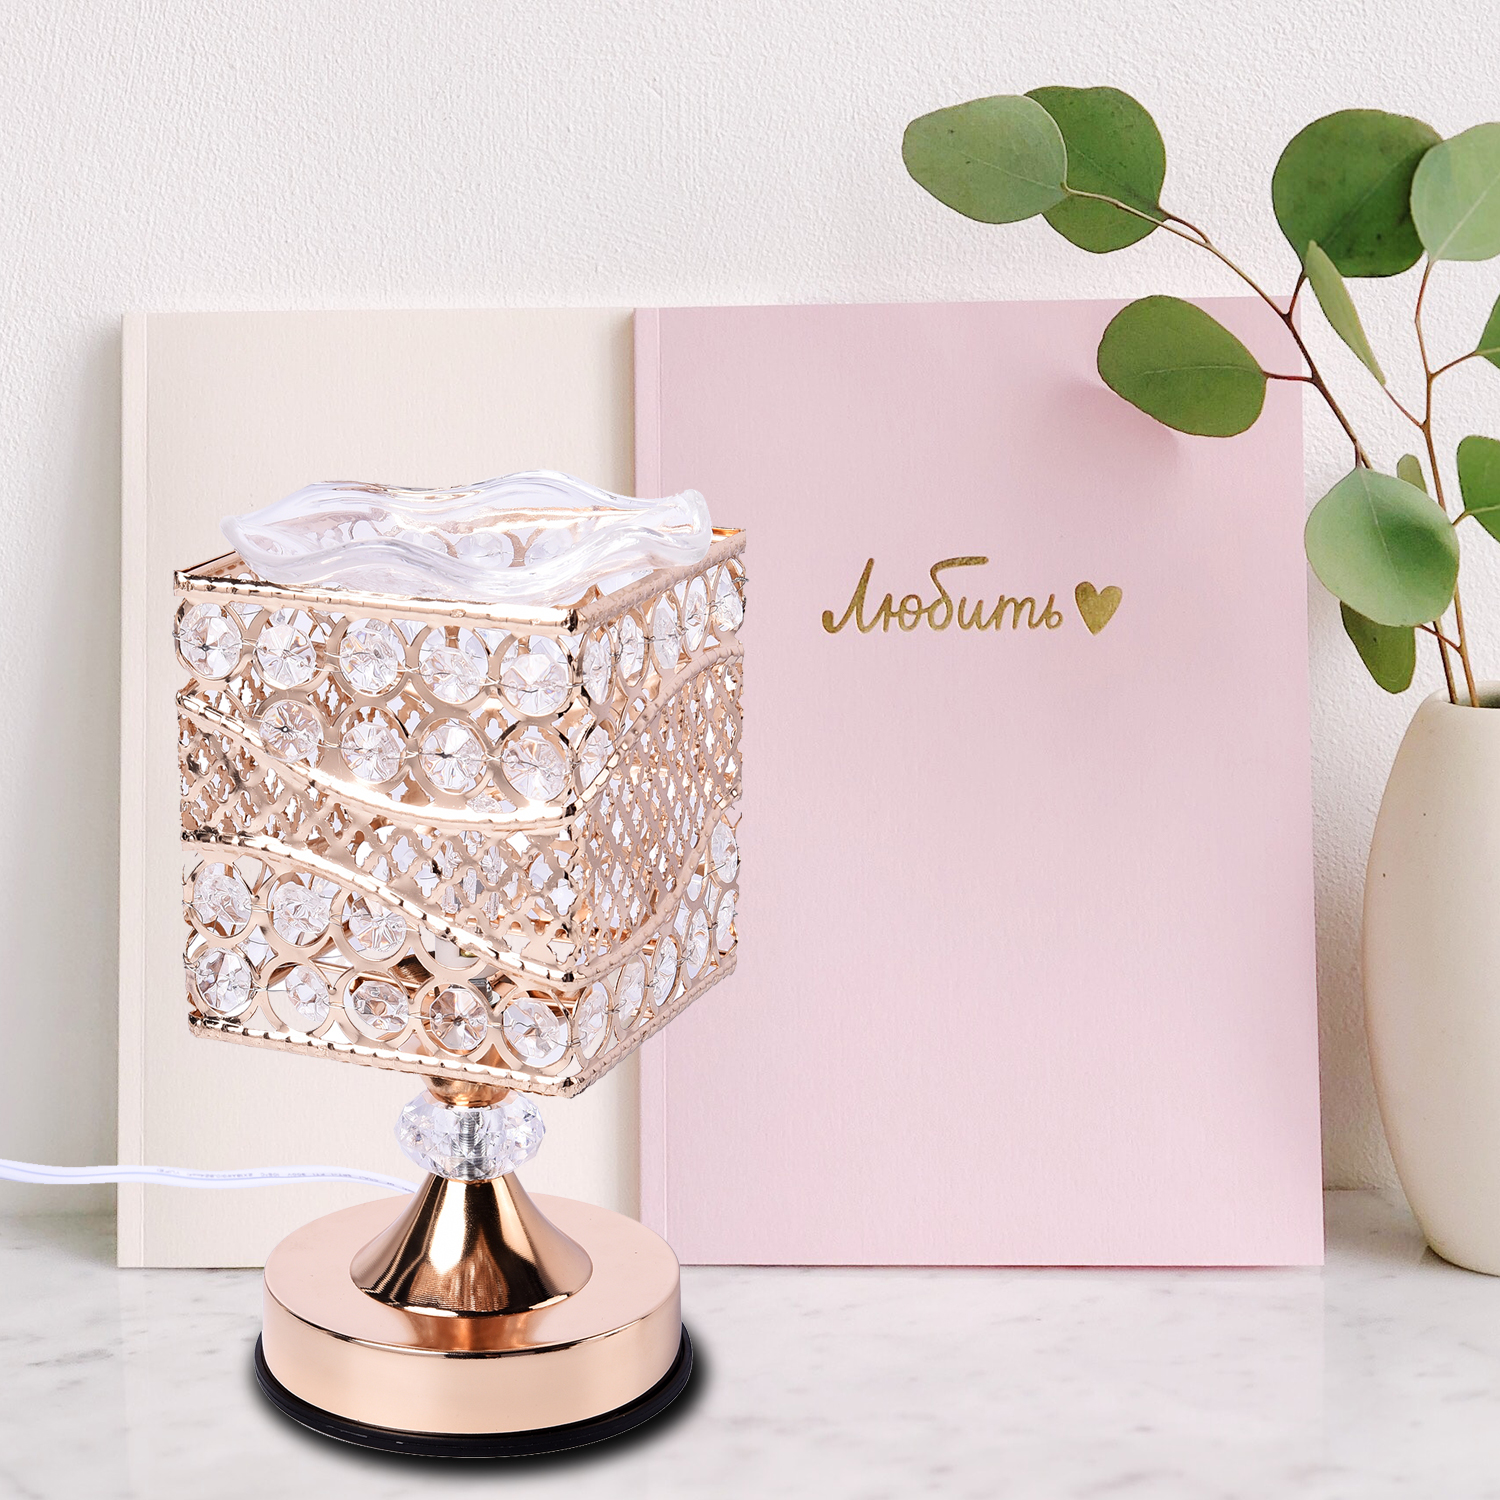 thumbnail 9 - Home Decor Gold Color Iron Design G Table Lamp with UL Plug Bulb G5 Included